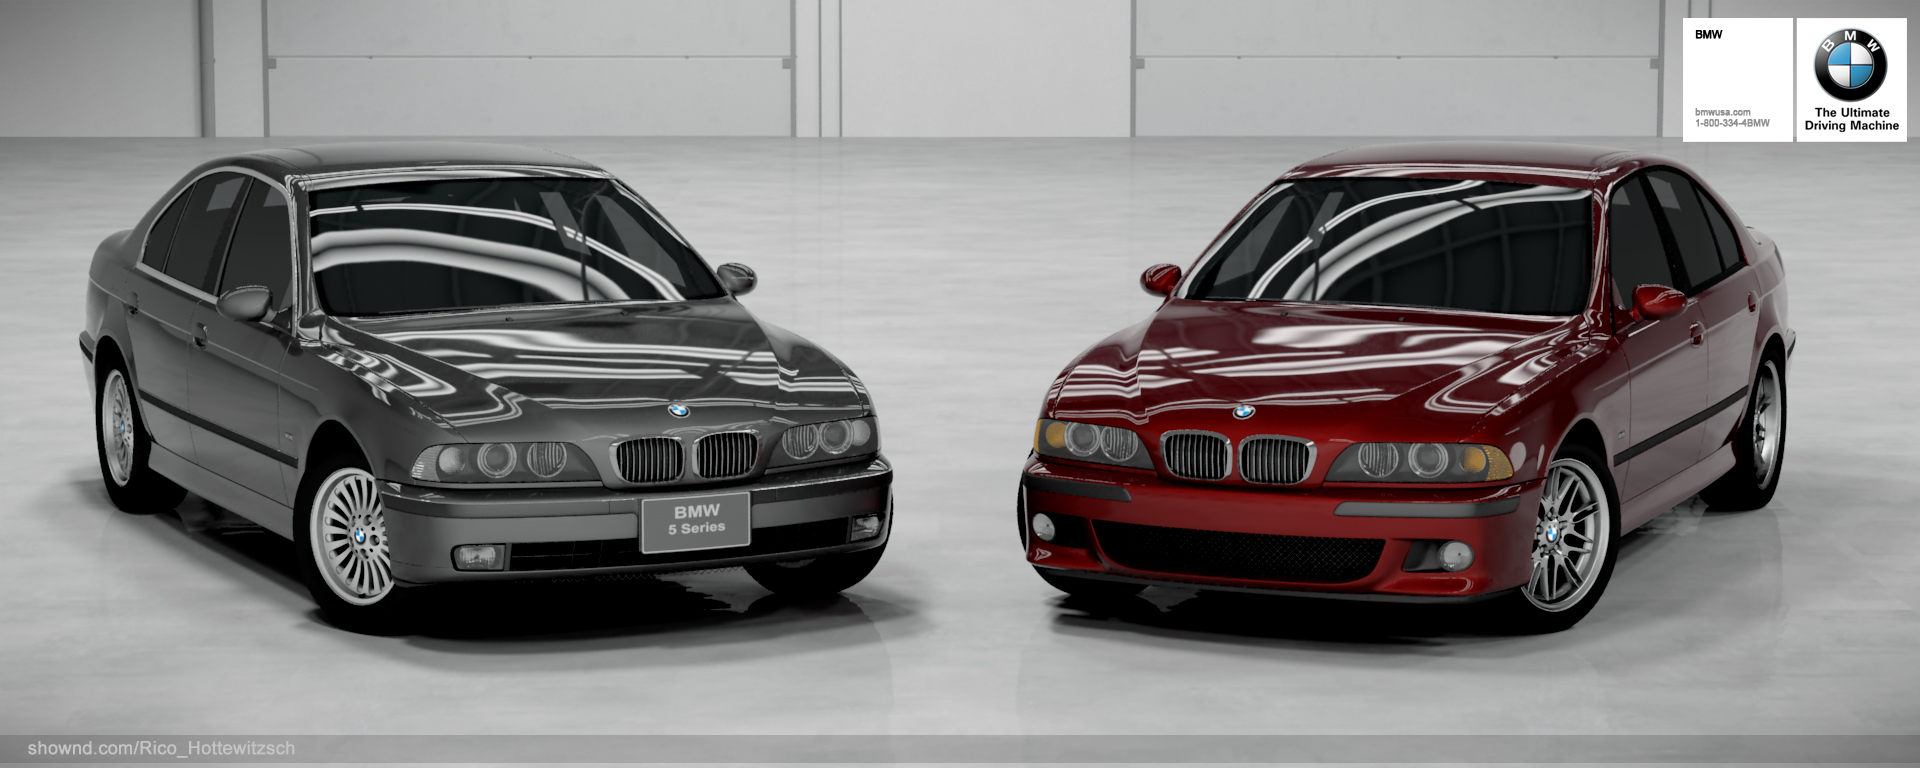 bmw e39 540i and m5 by schaefft on deviantart. Black Bedroom Furniture Sets. Home Design Ideas